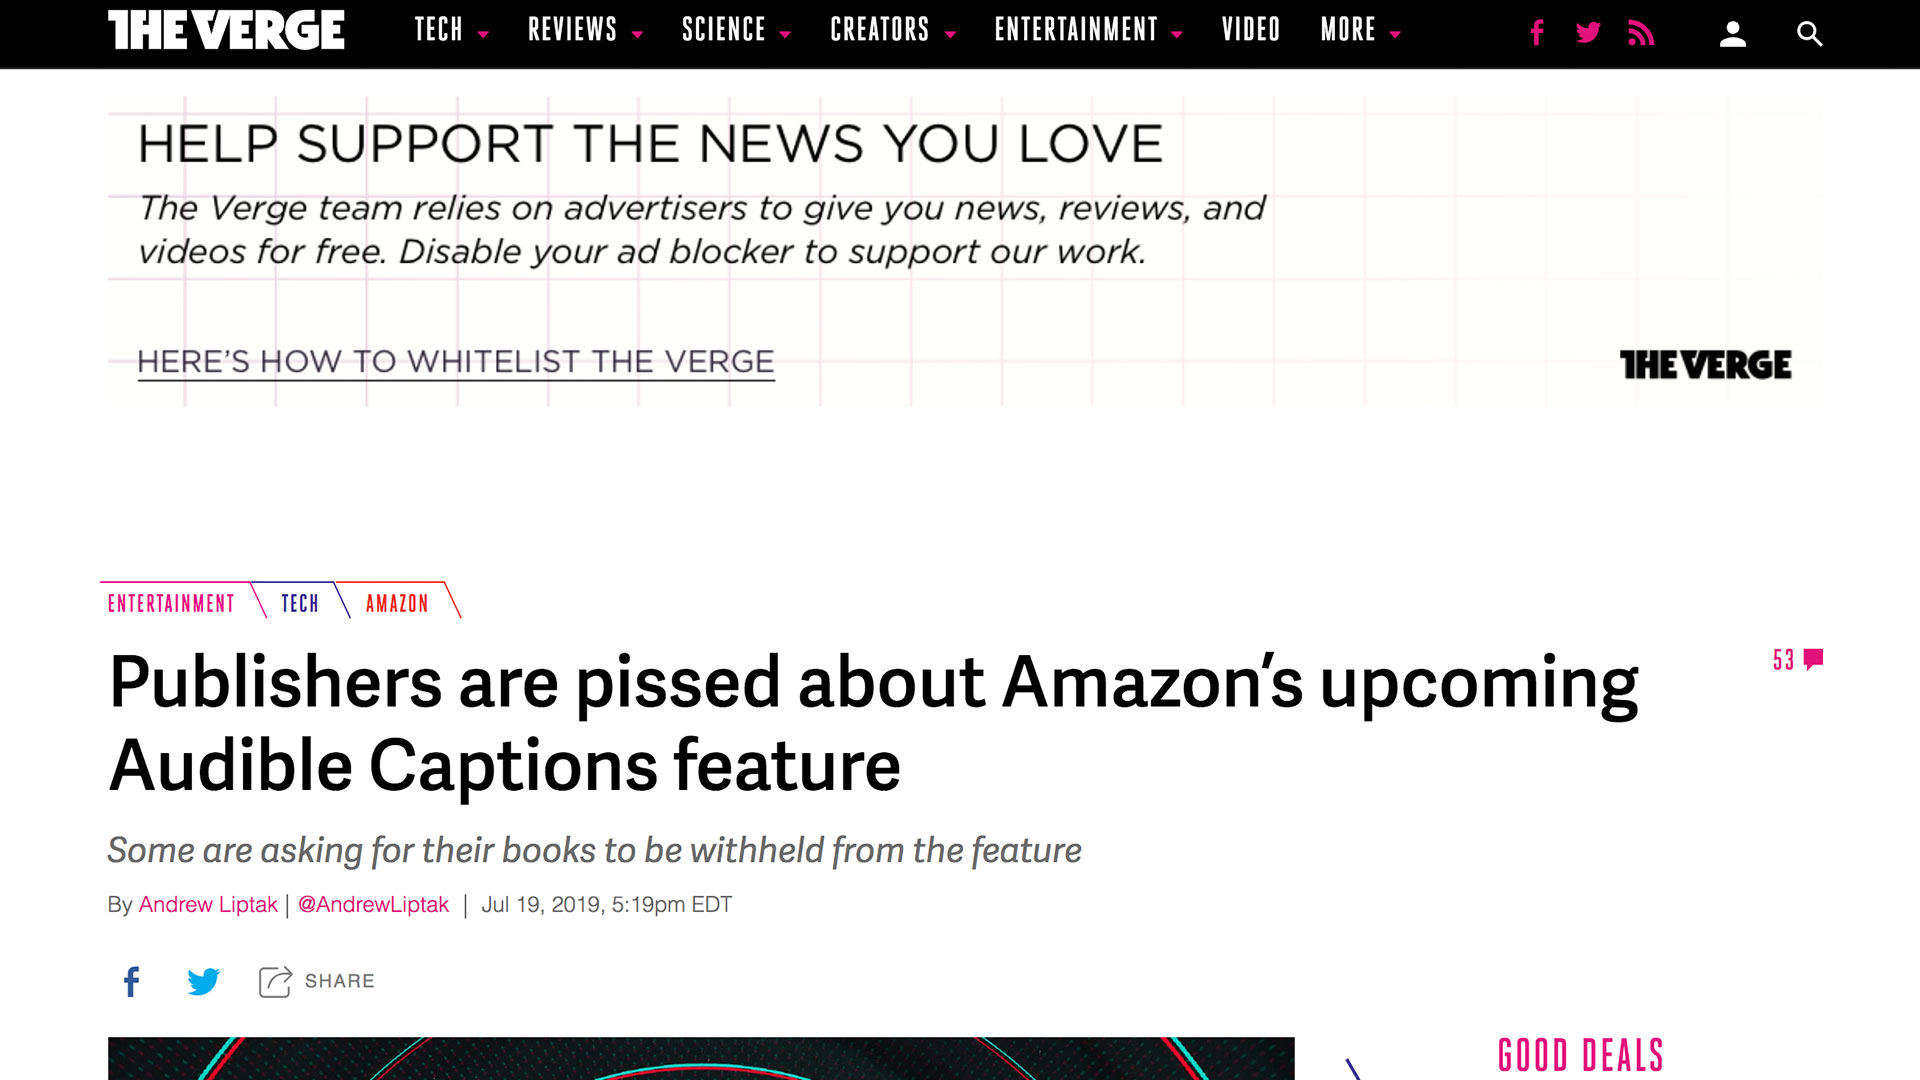 Fairness Rocks News Publishers are pissed about Amazon's upcoming Audible Captions feature